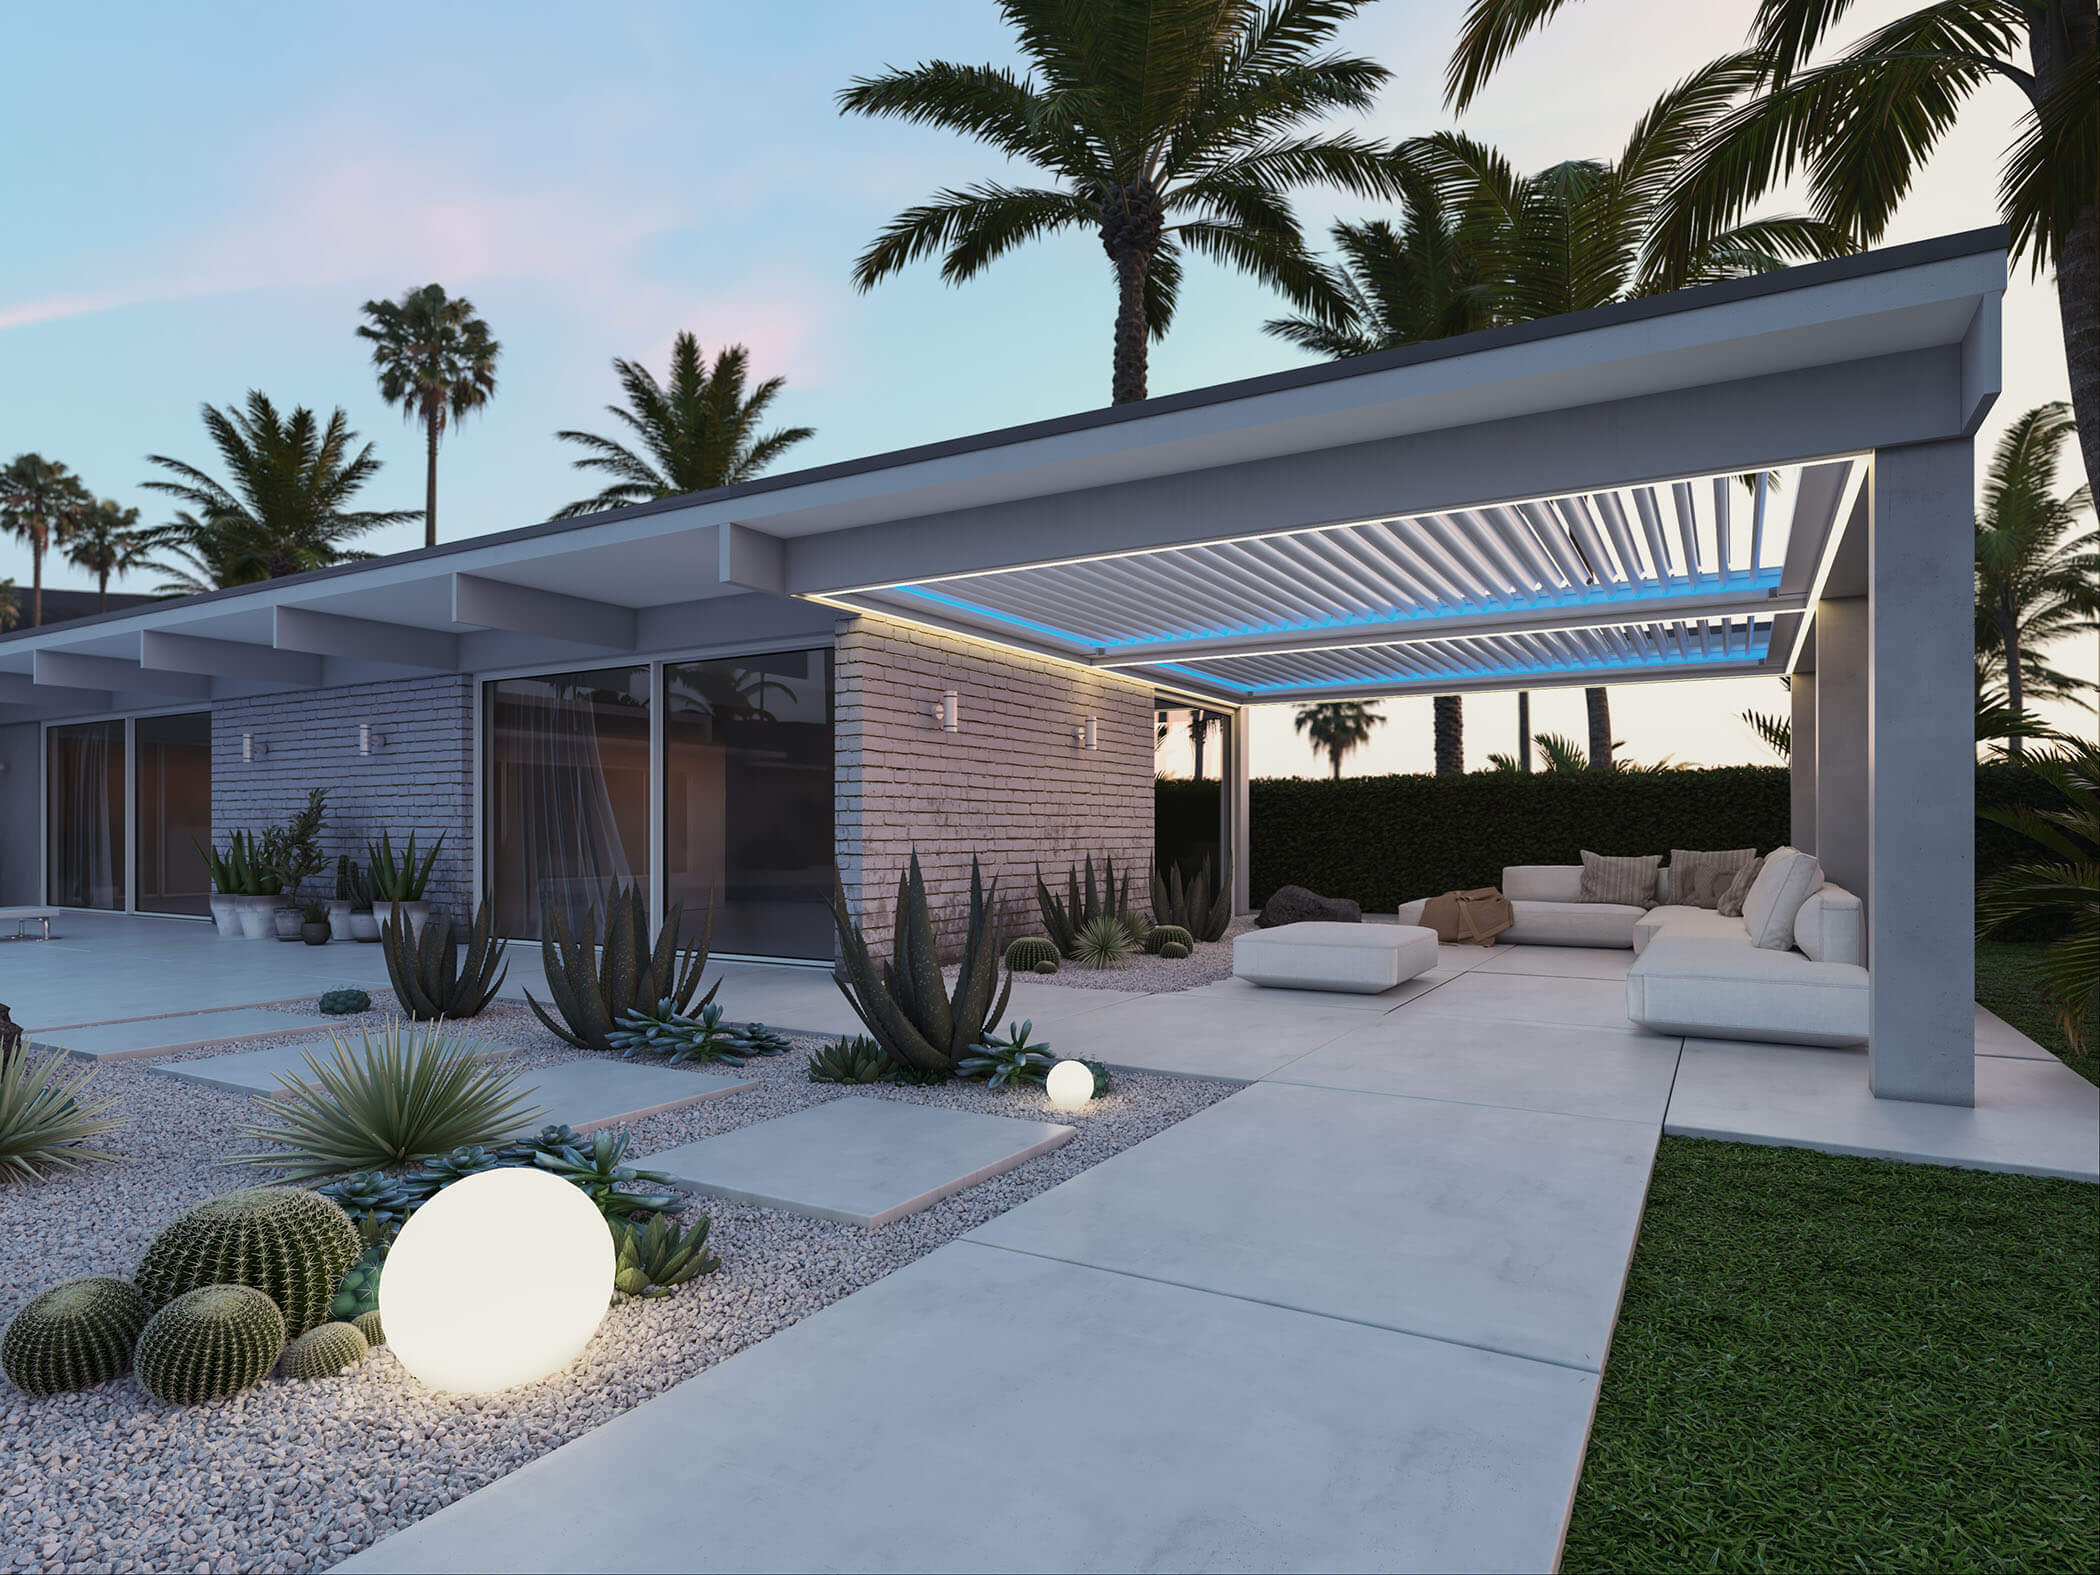 StruXure Pergola X with TraX system that includes blue track lights around roof louvers